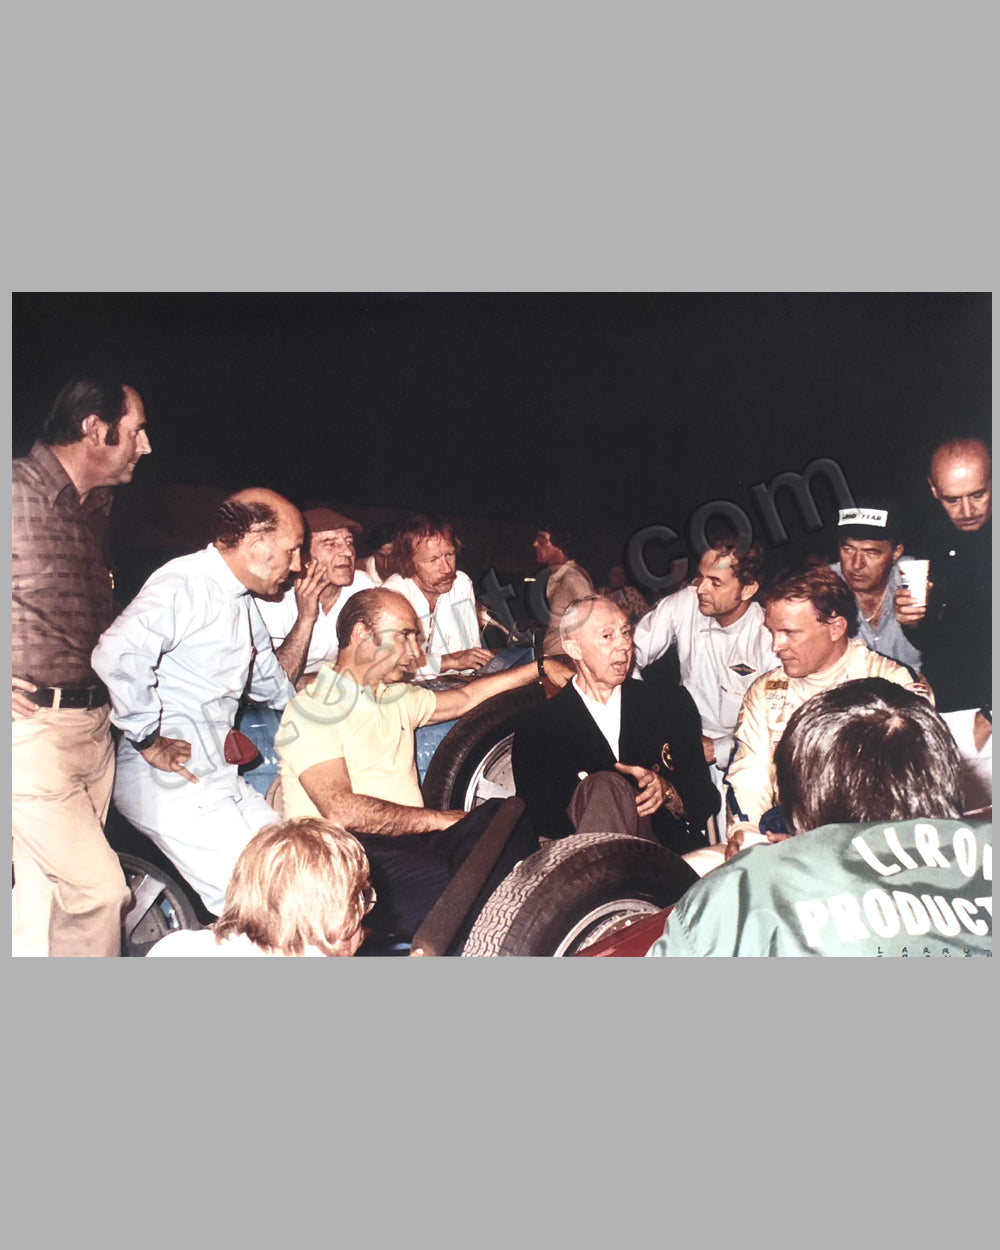 1976 Driver's Reunion Color Photograph taken by Larry Crane